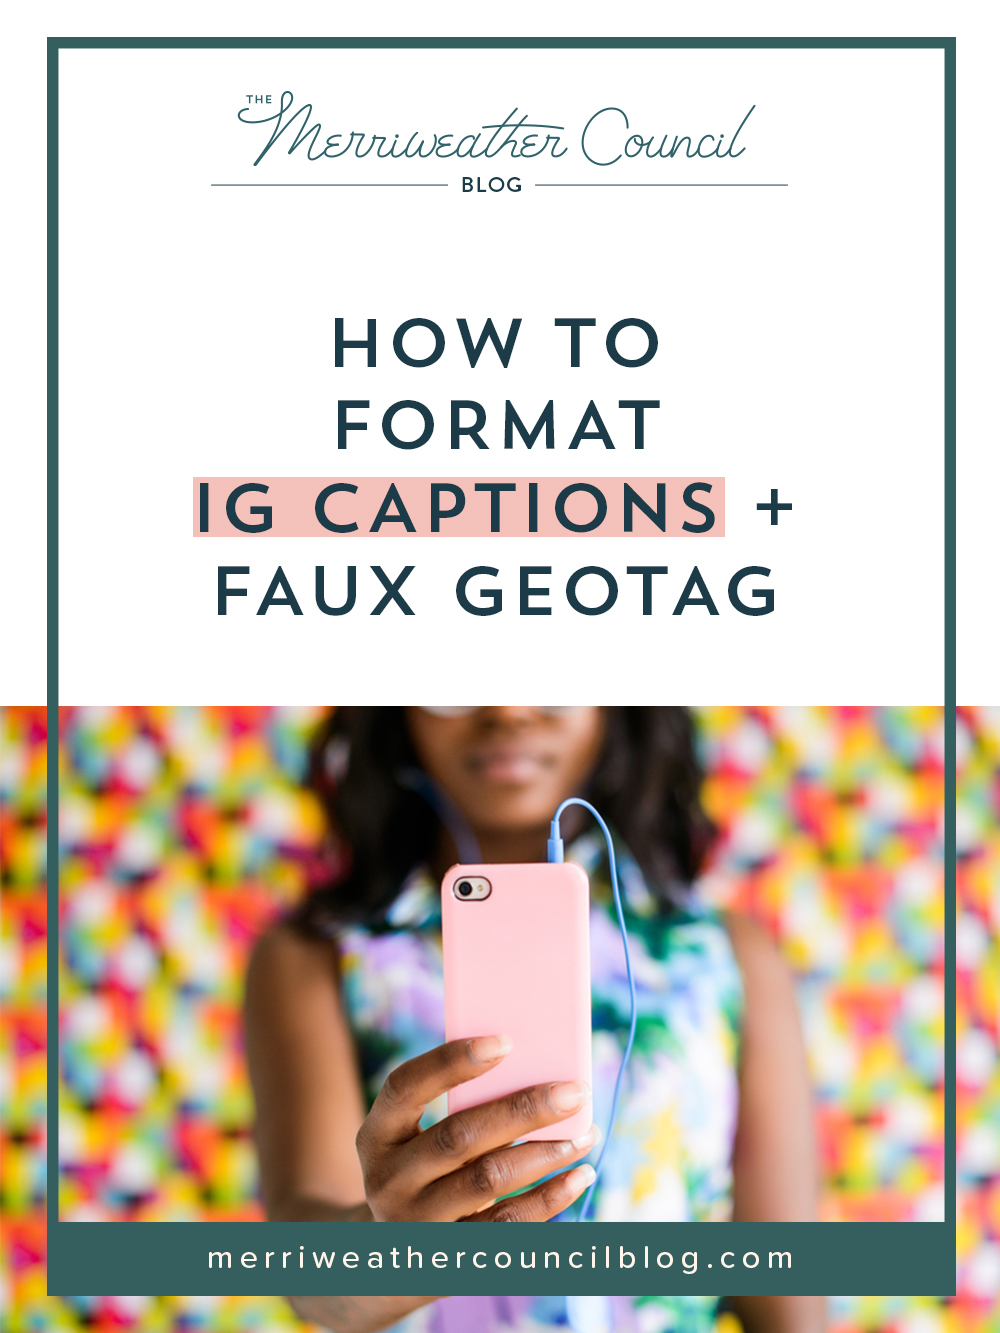 how to format IG captions + faux geotag | the merriweather council blog